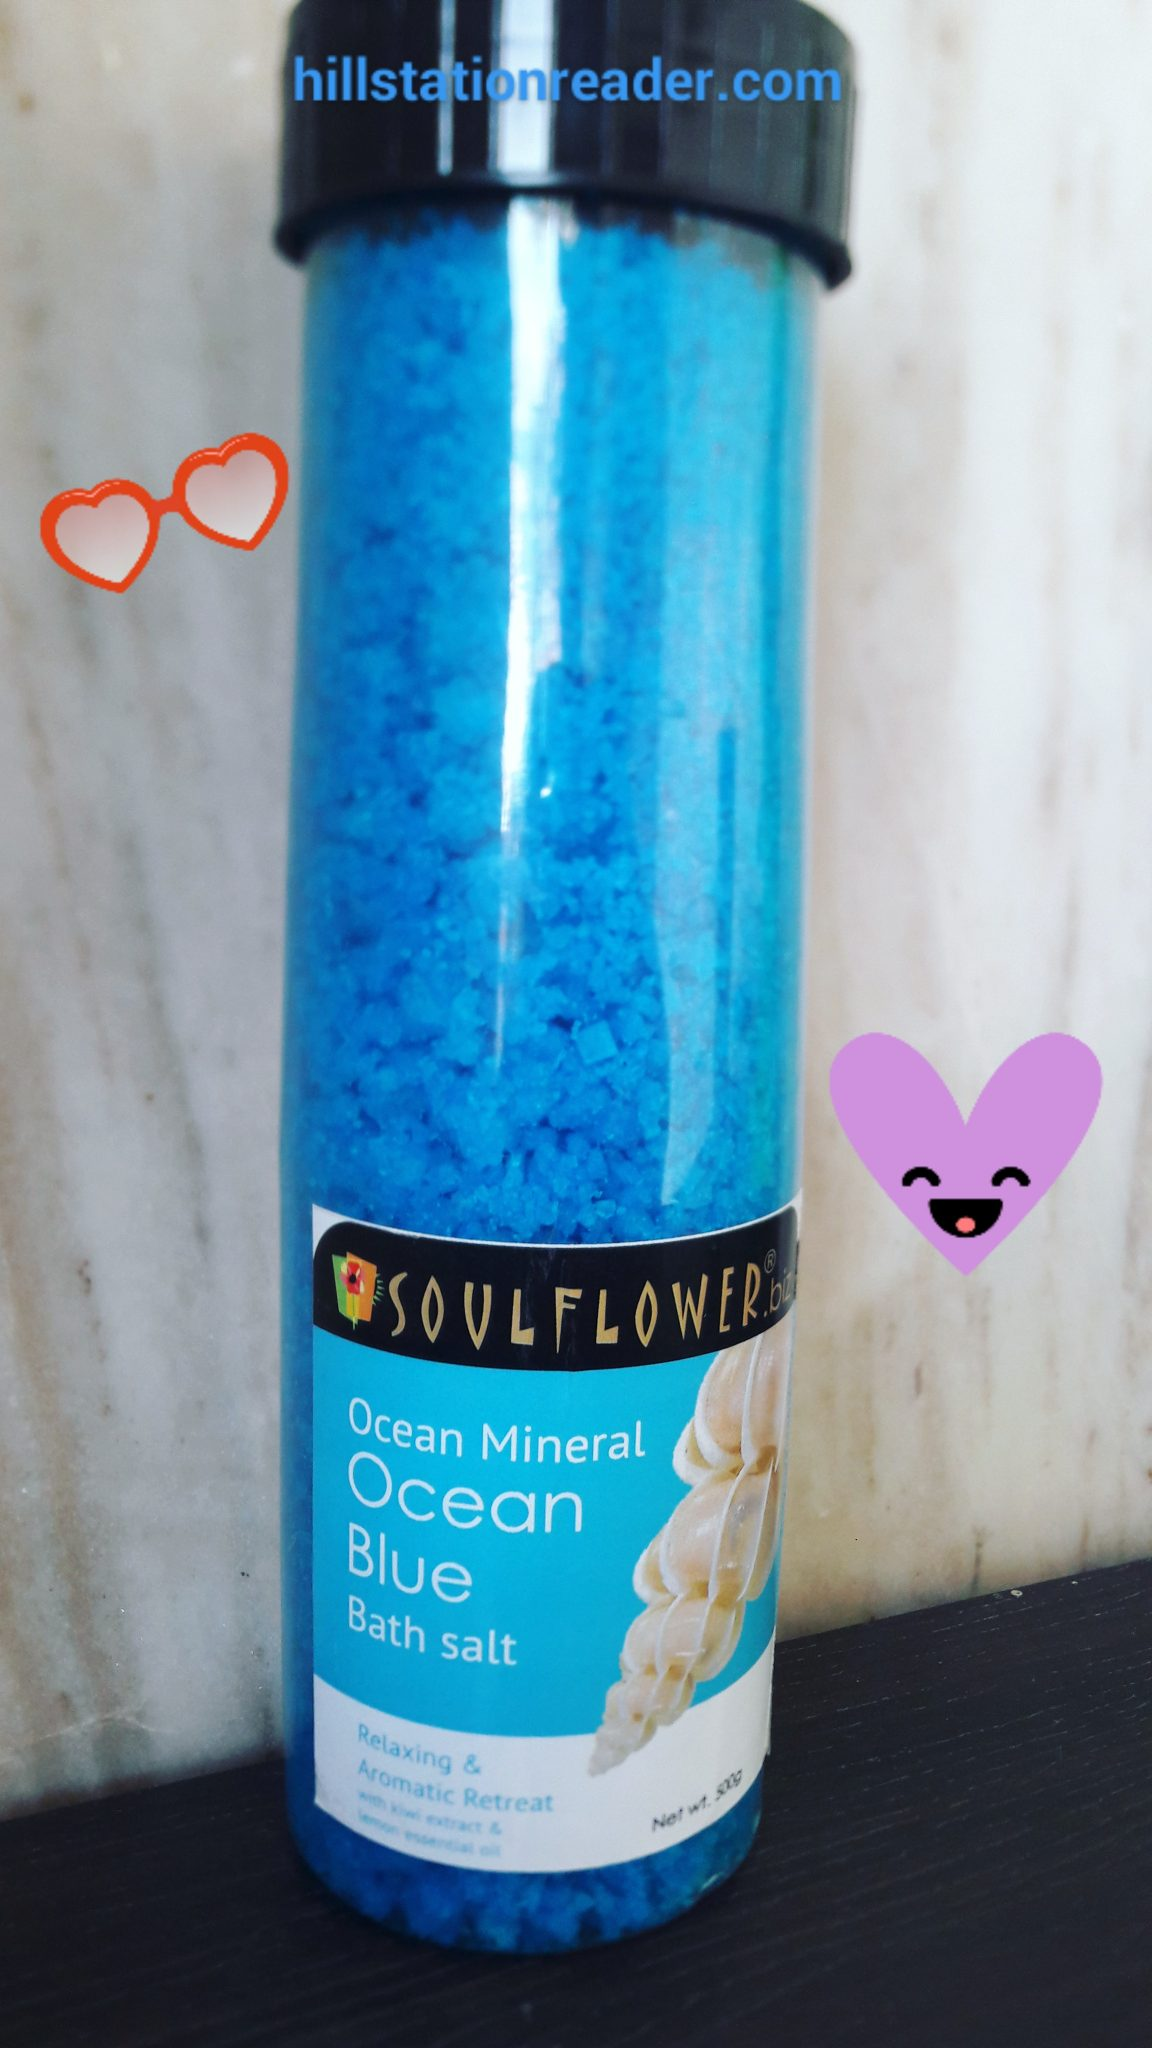 Review of Ocean Bath Salt by Soulflower